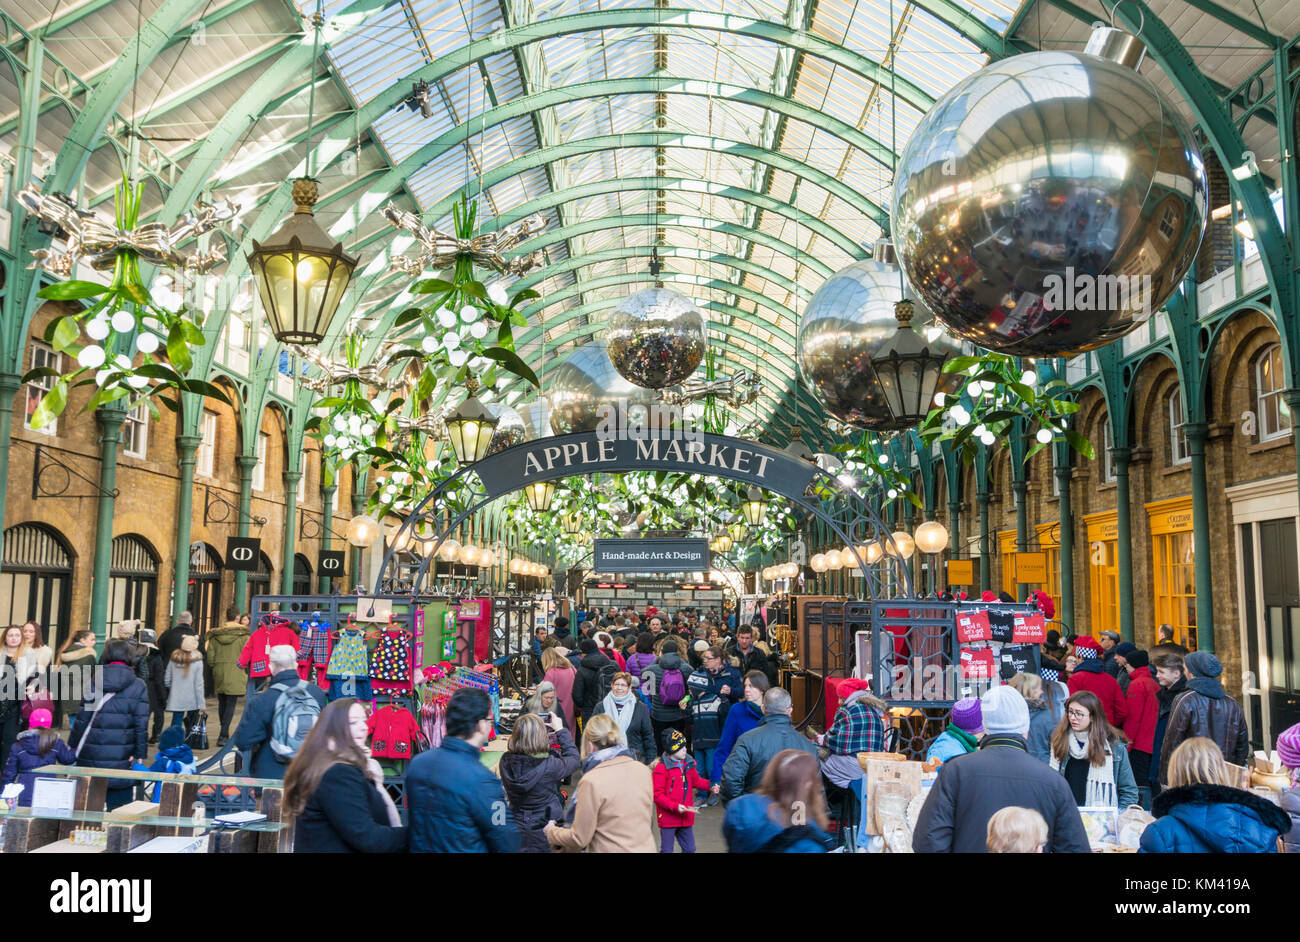 covent garden London England  people shopping and at leisure in apple market shops restaurants and cafes Covent - Stock Image